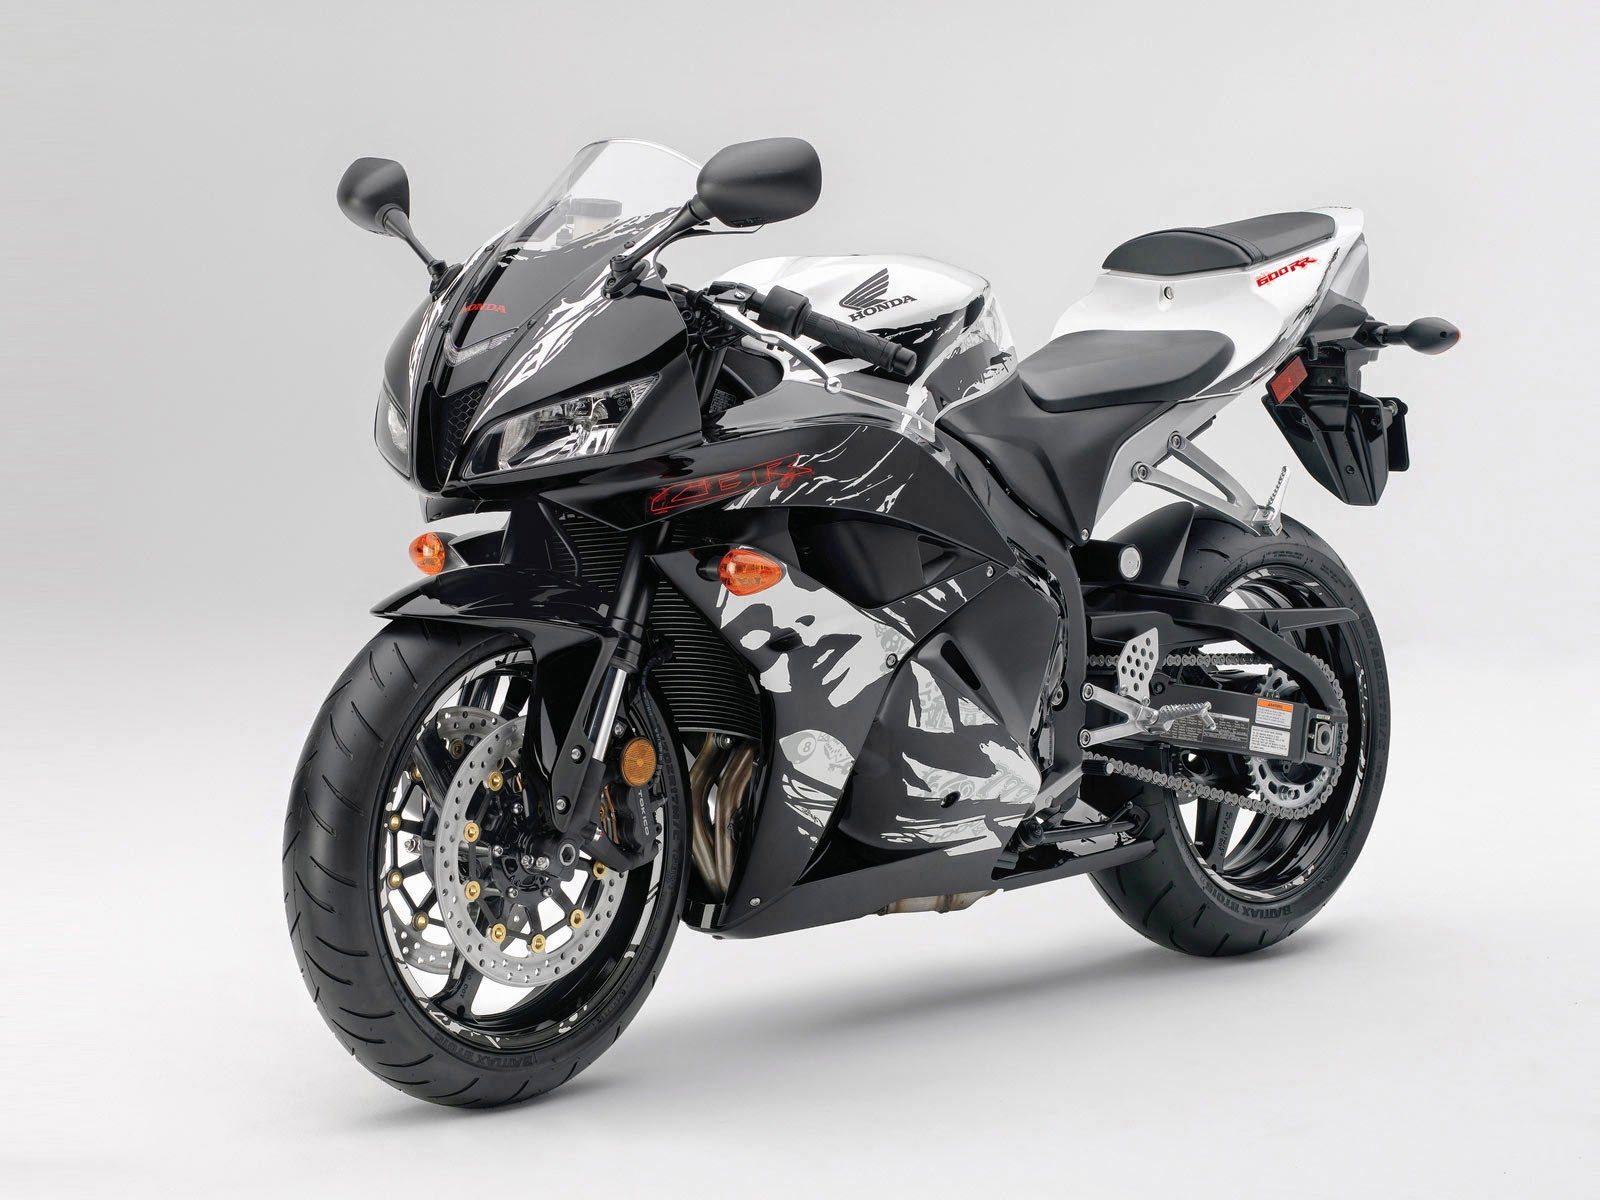 Honda CBR600RR Upcoming Motorcycles